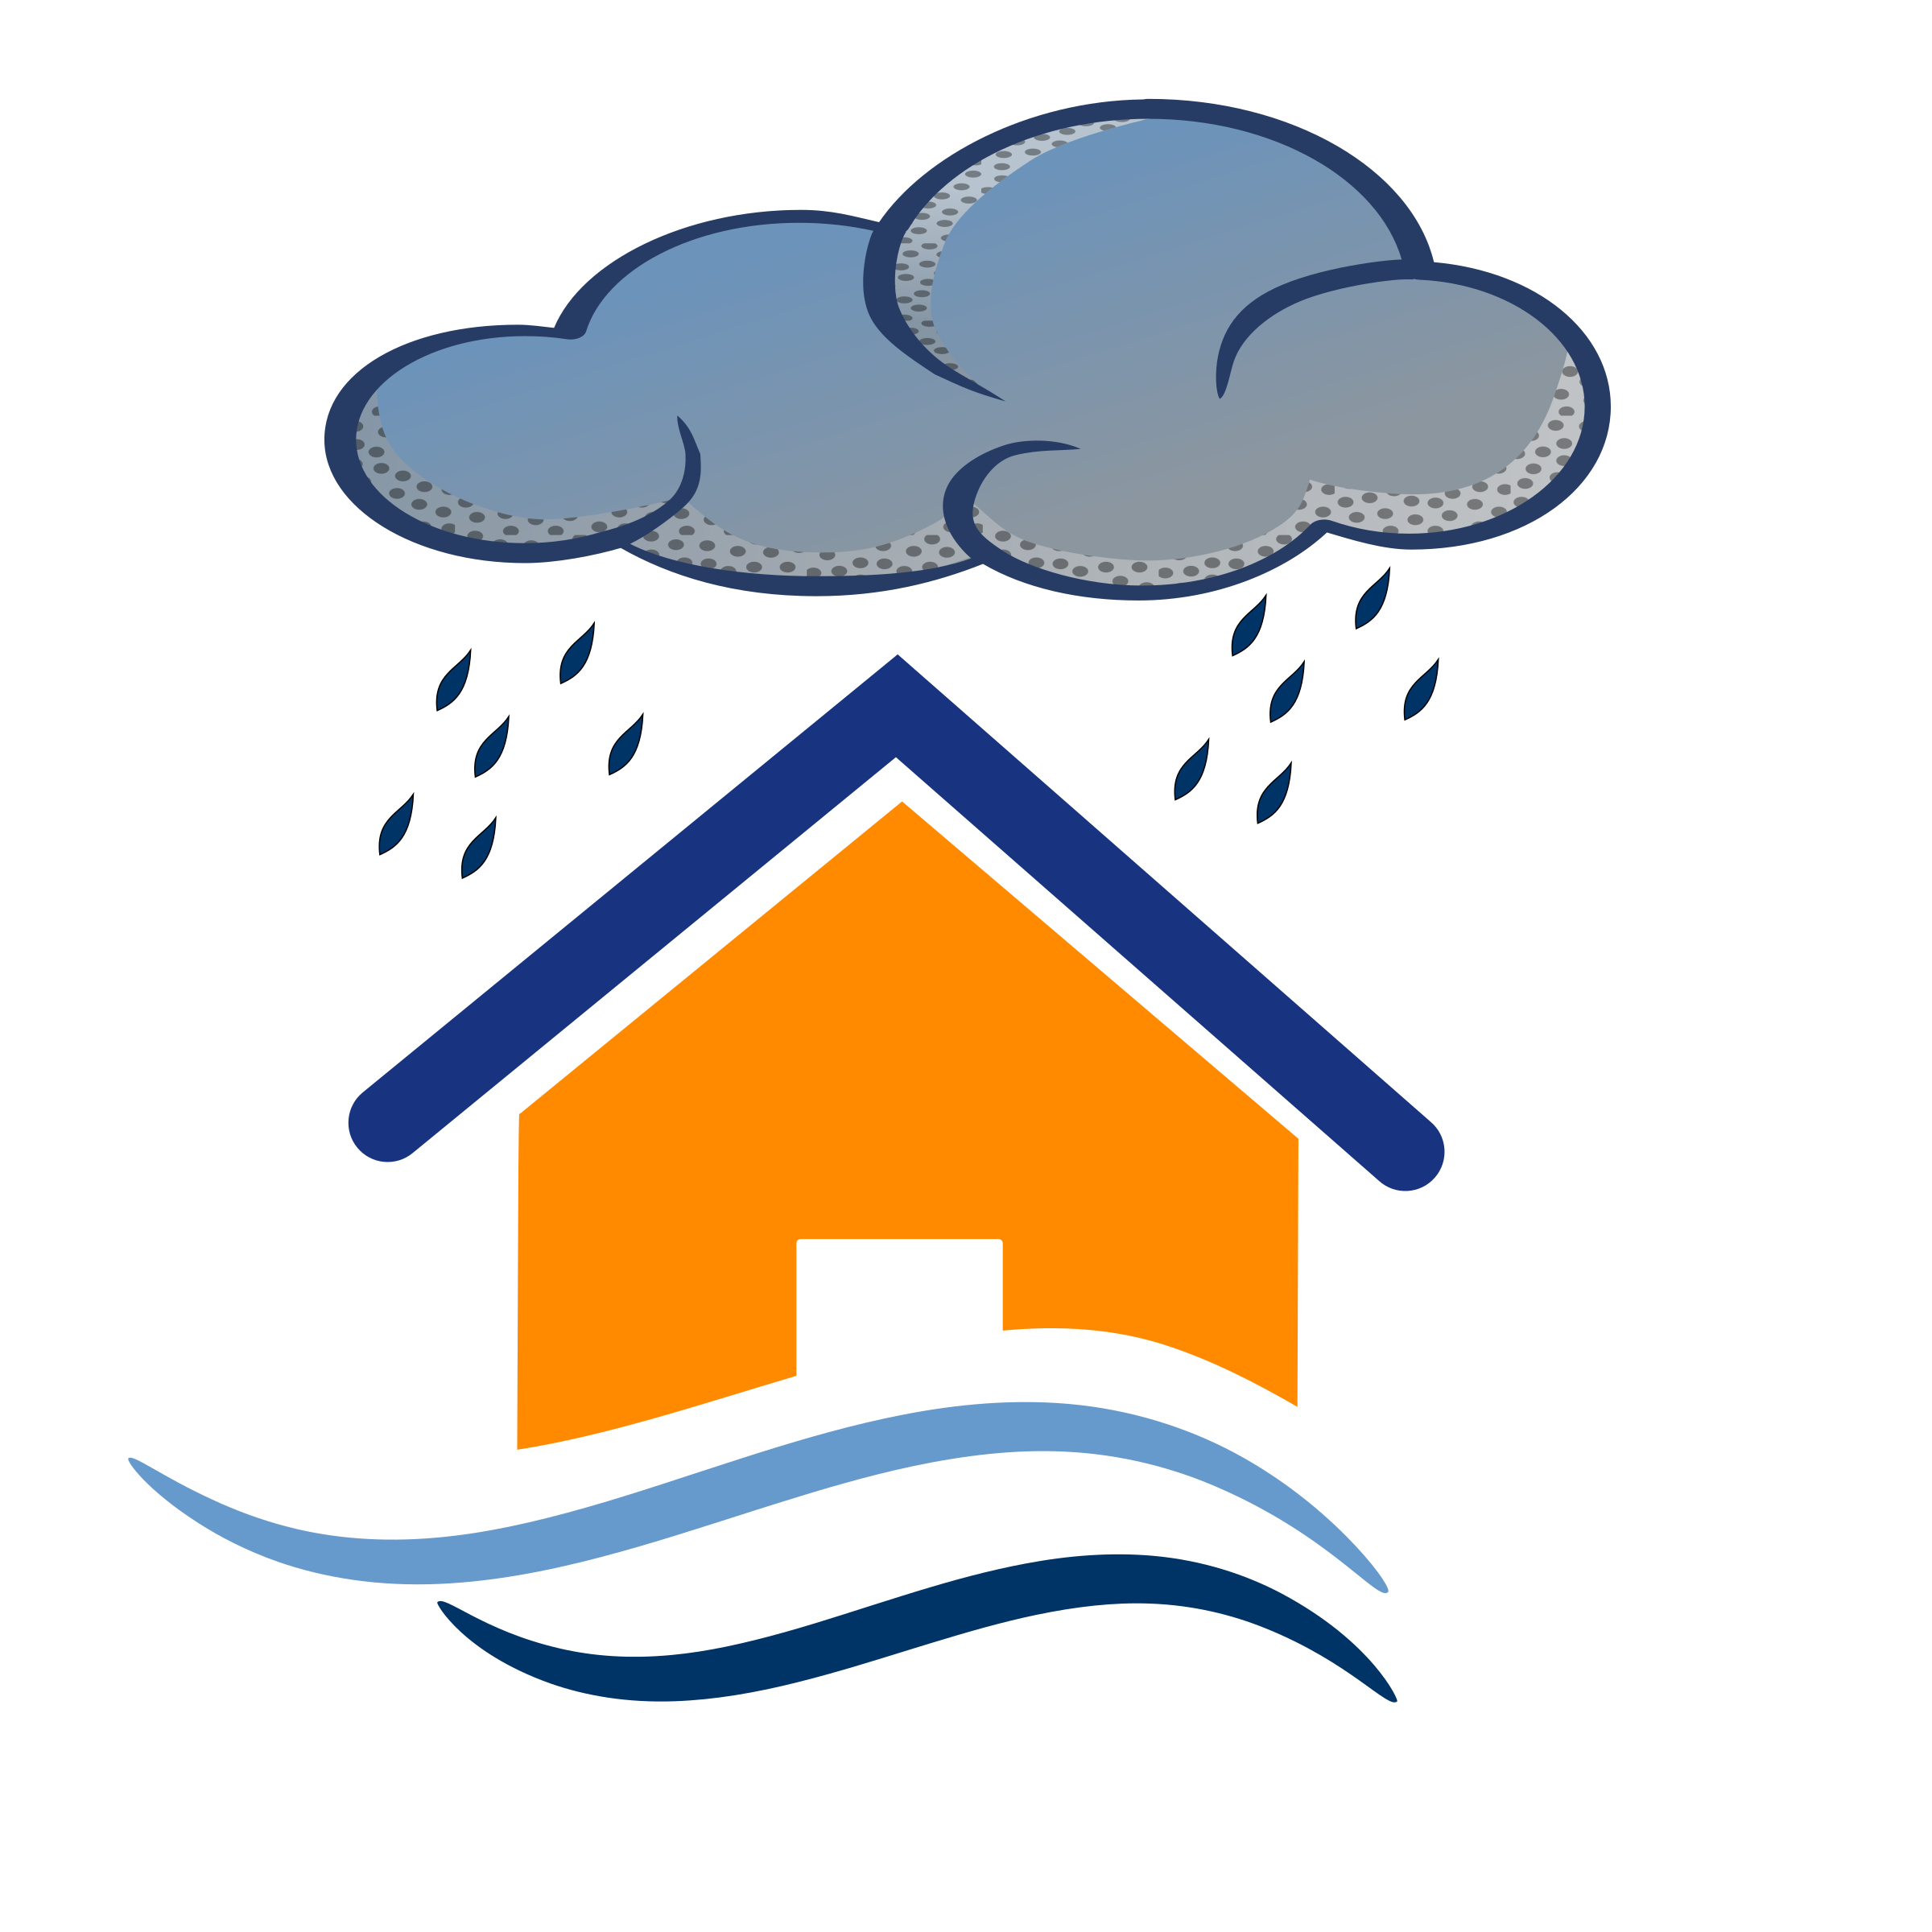 Flood clipart. Free cliparts download clip